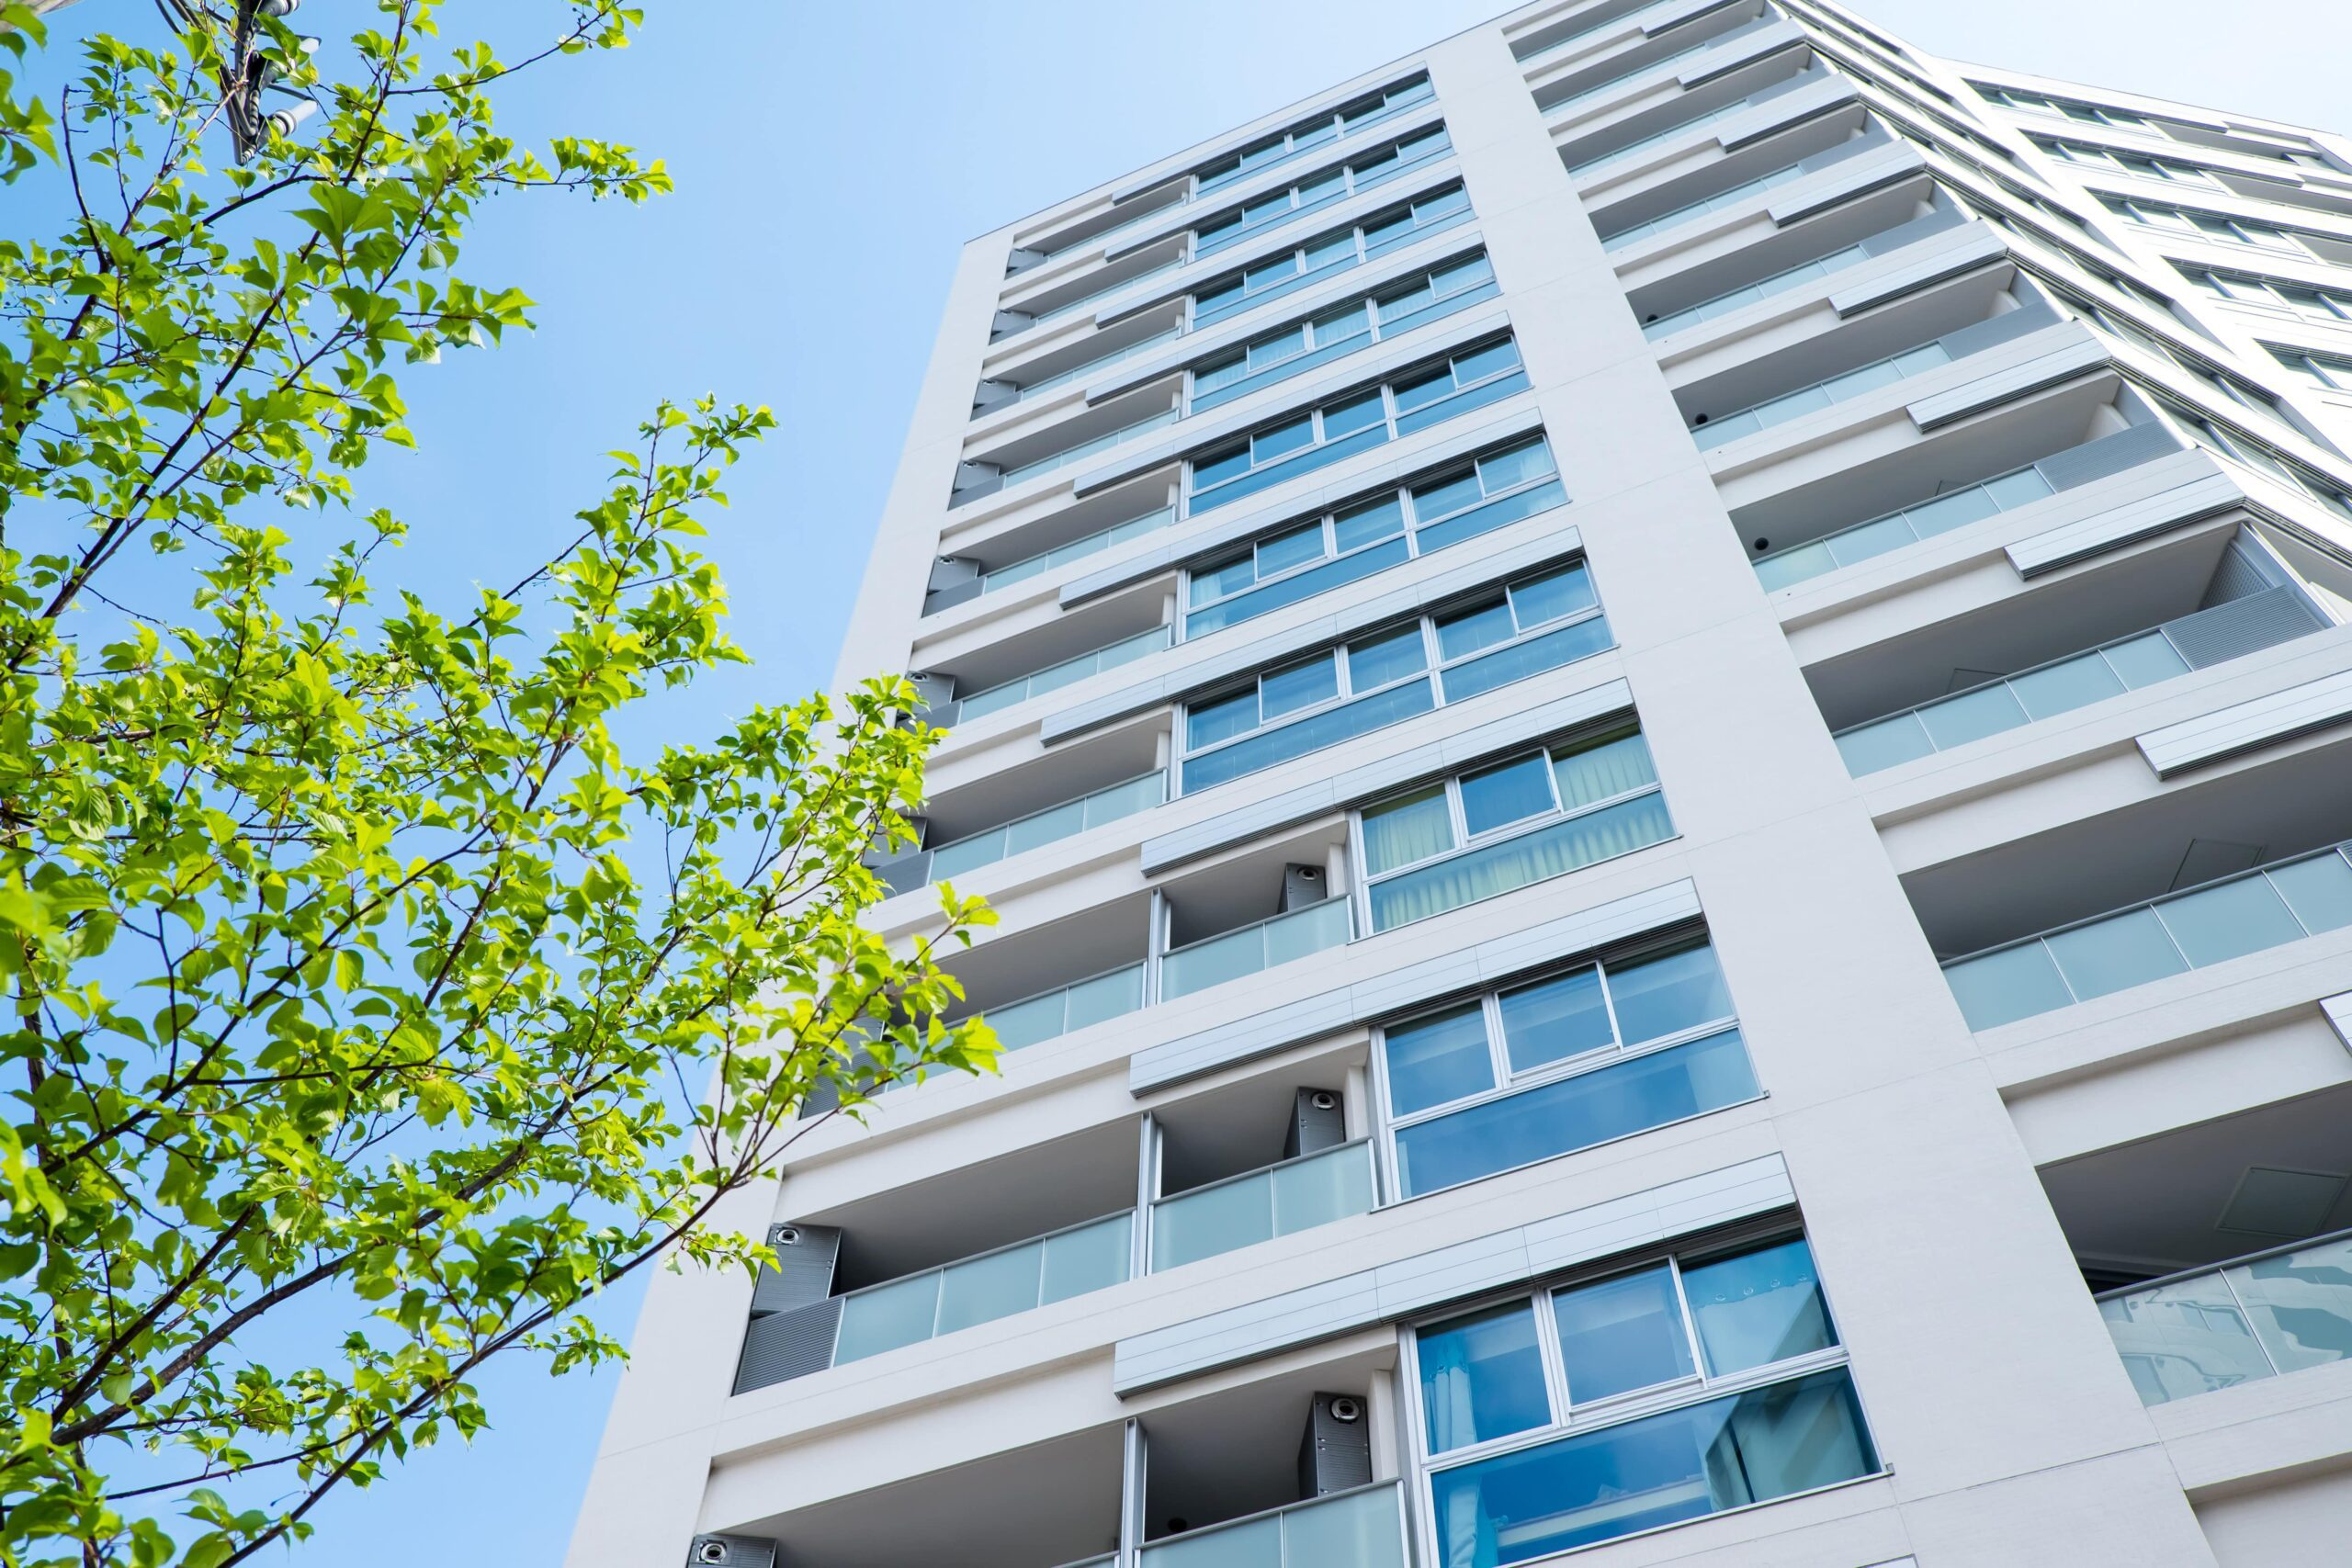 Which Property Investment is Better? Build to Rent Vs Build to Sell